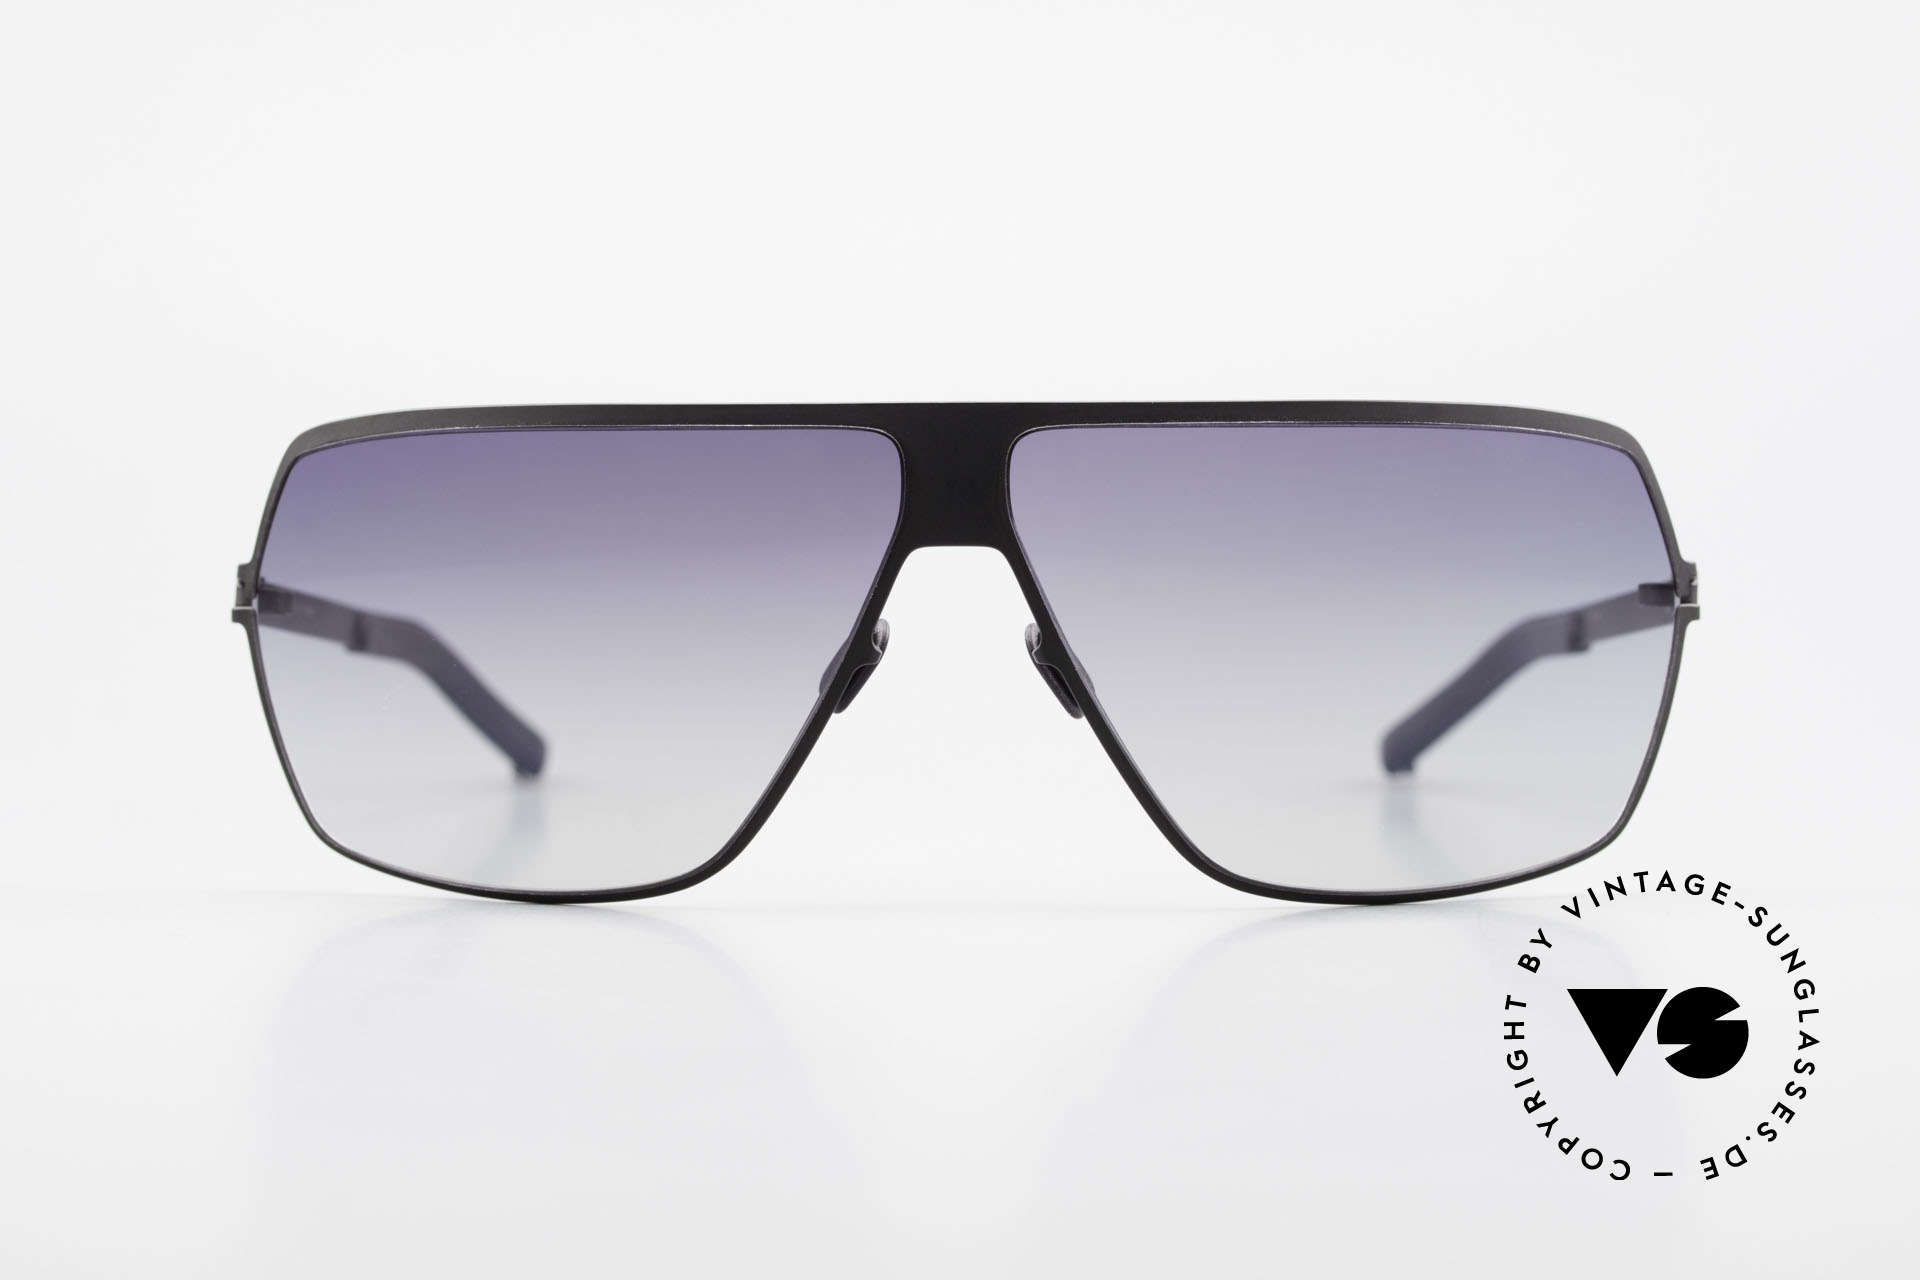 Mykita Rock No1 Men's Sunglasses 2009, MYKITA: the youngest brand in our vintage collection, Made for Men